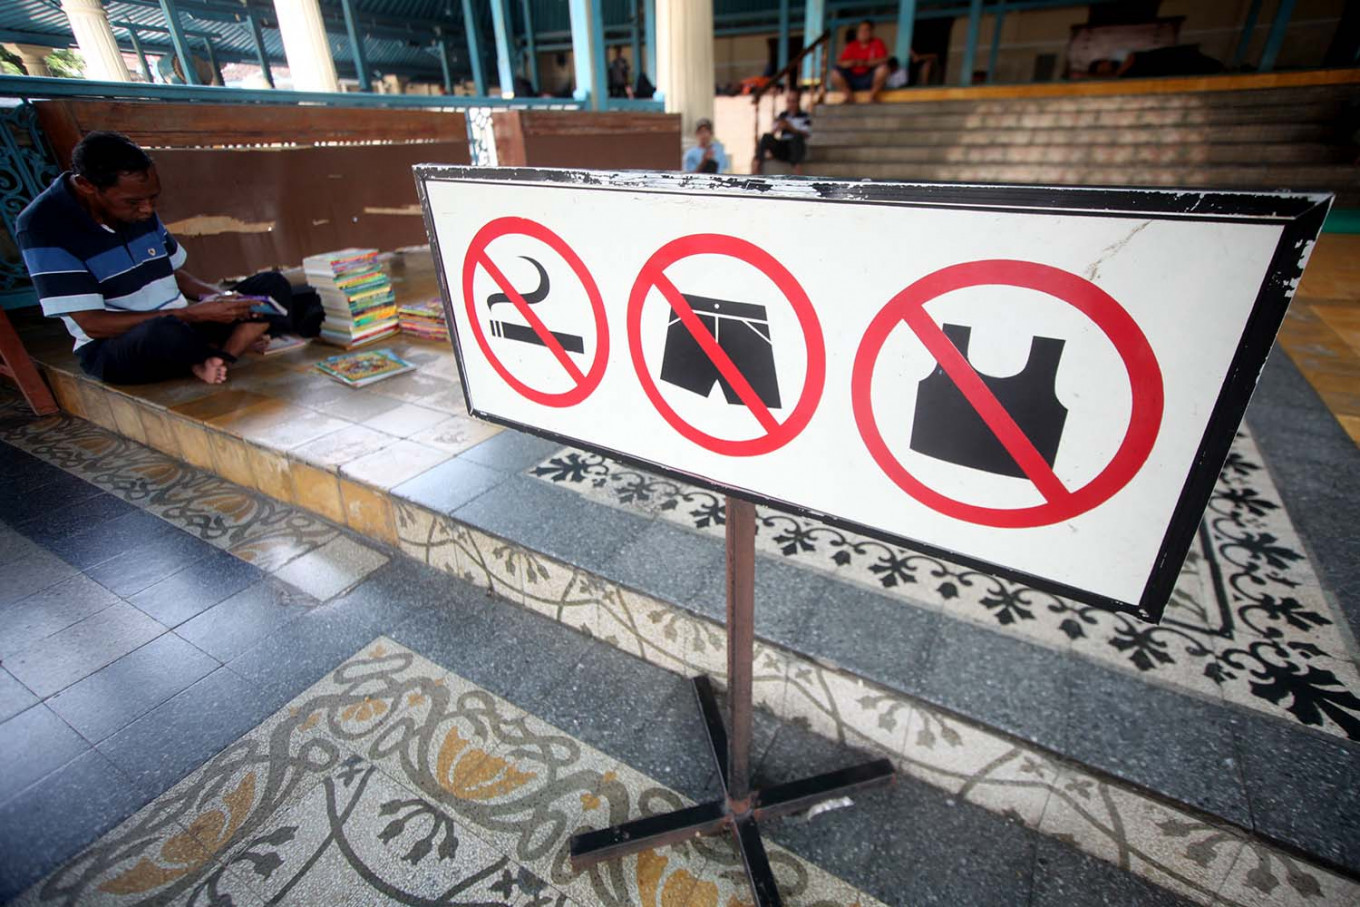 No smoking and proper attire signs are positioned at the mosque's verandah. JP/Boy T. Harjanto